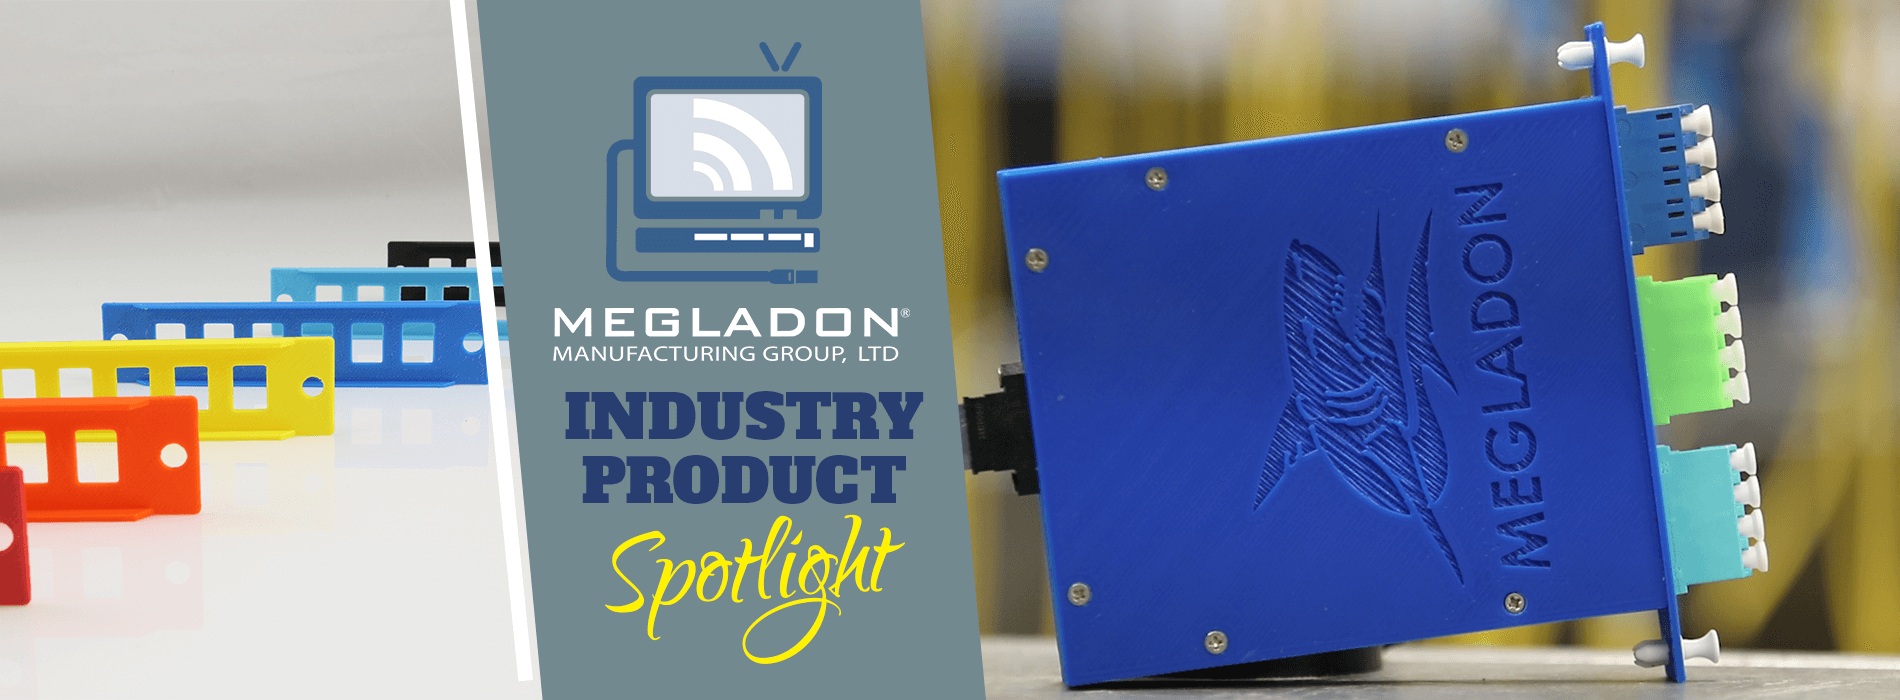 Industry Product Spotlight 3D Printed Data Center Solutions